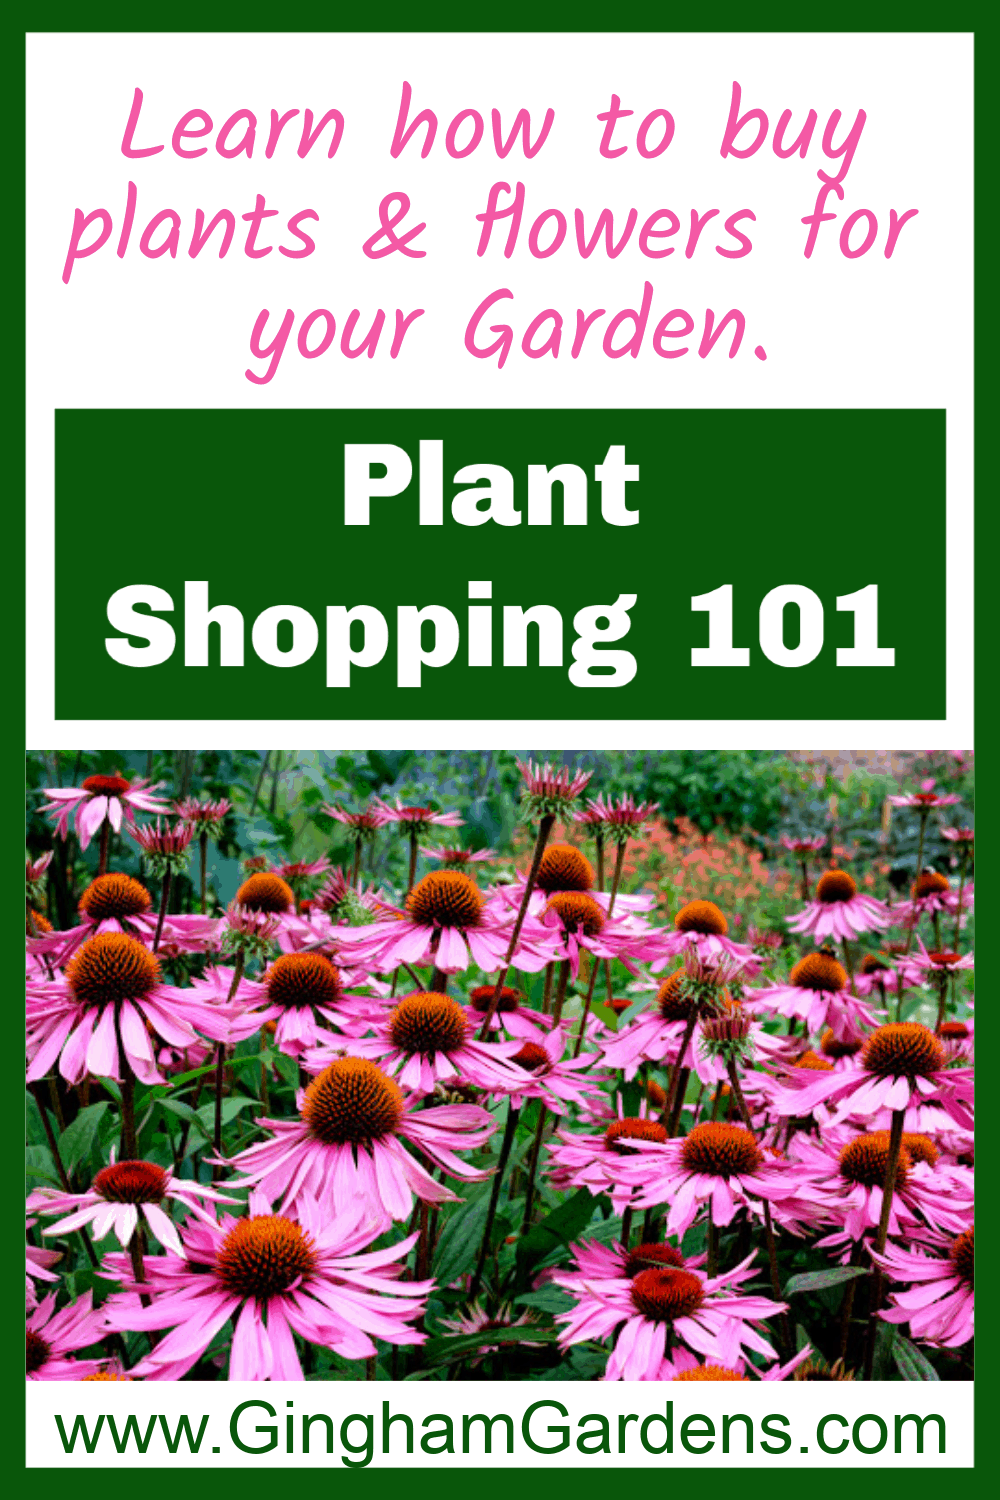 Perennial Coneflowers with Text Overlay - Plant Shopping 101